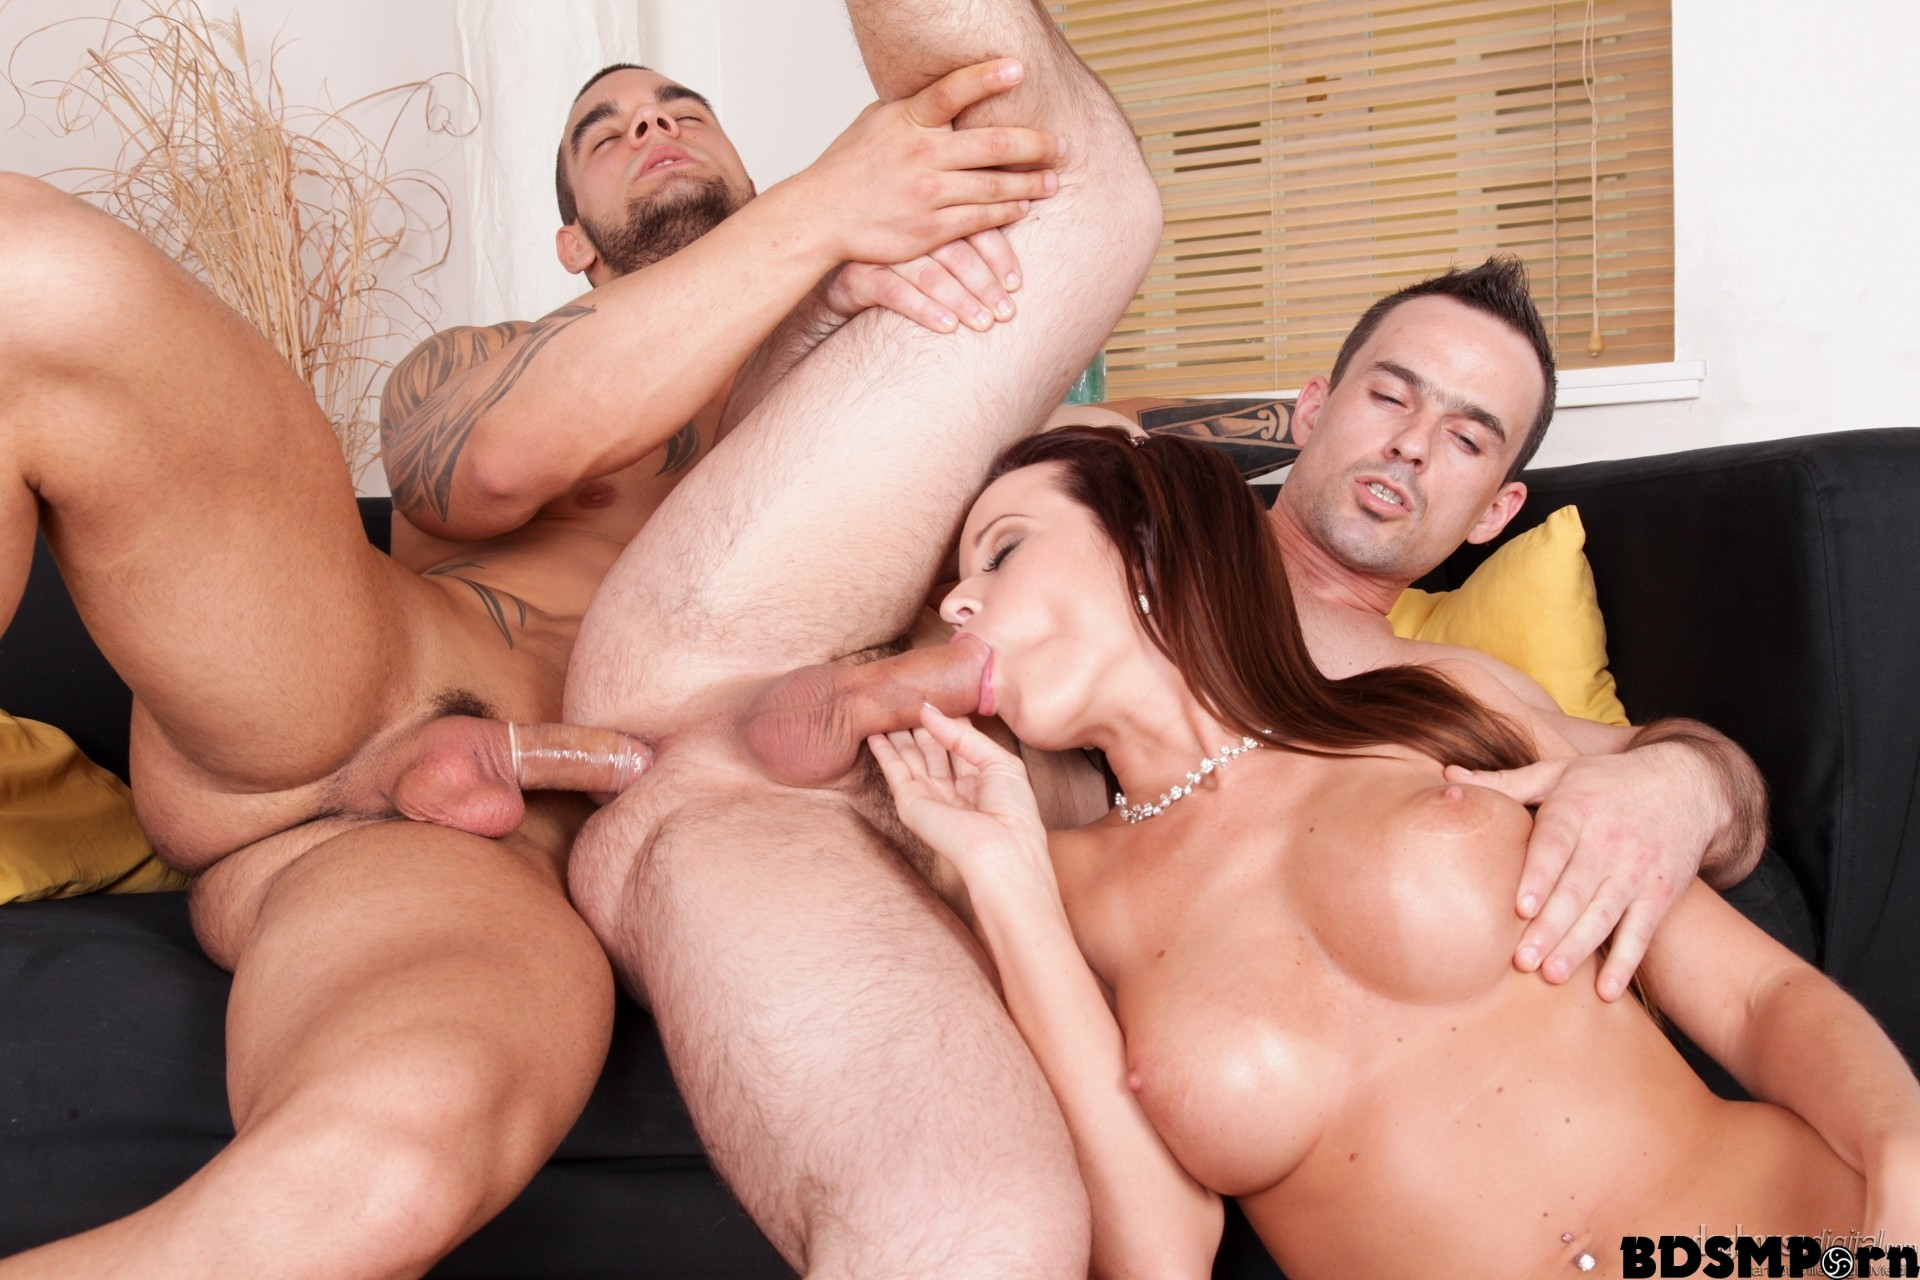 you wifes girls blowjob penis orgy attentively would